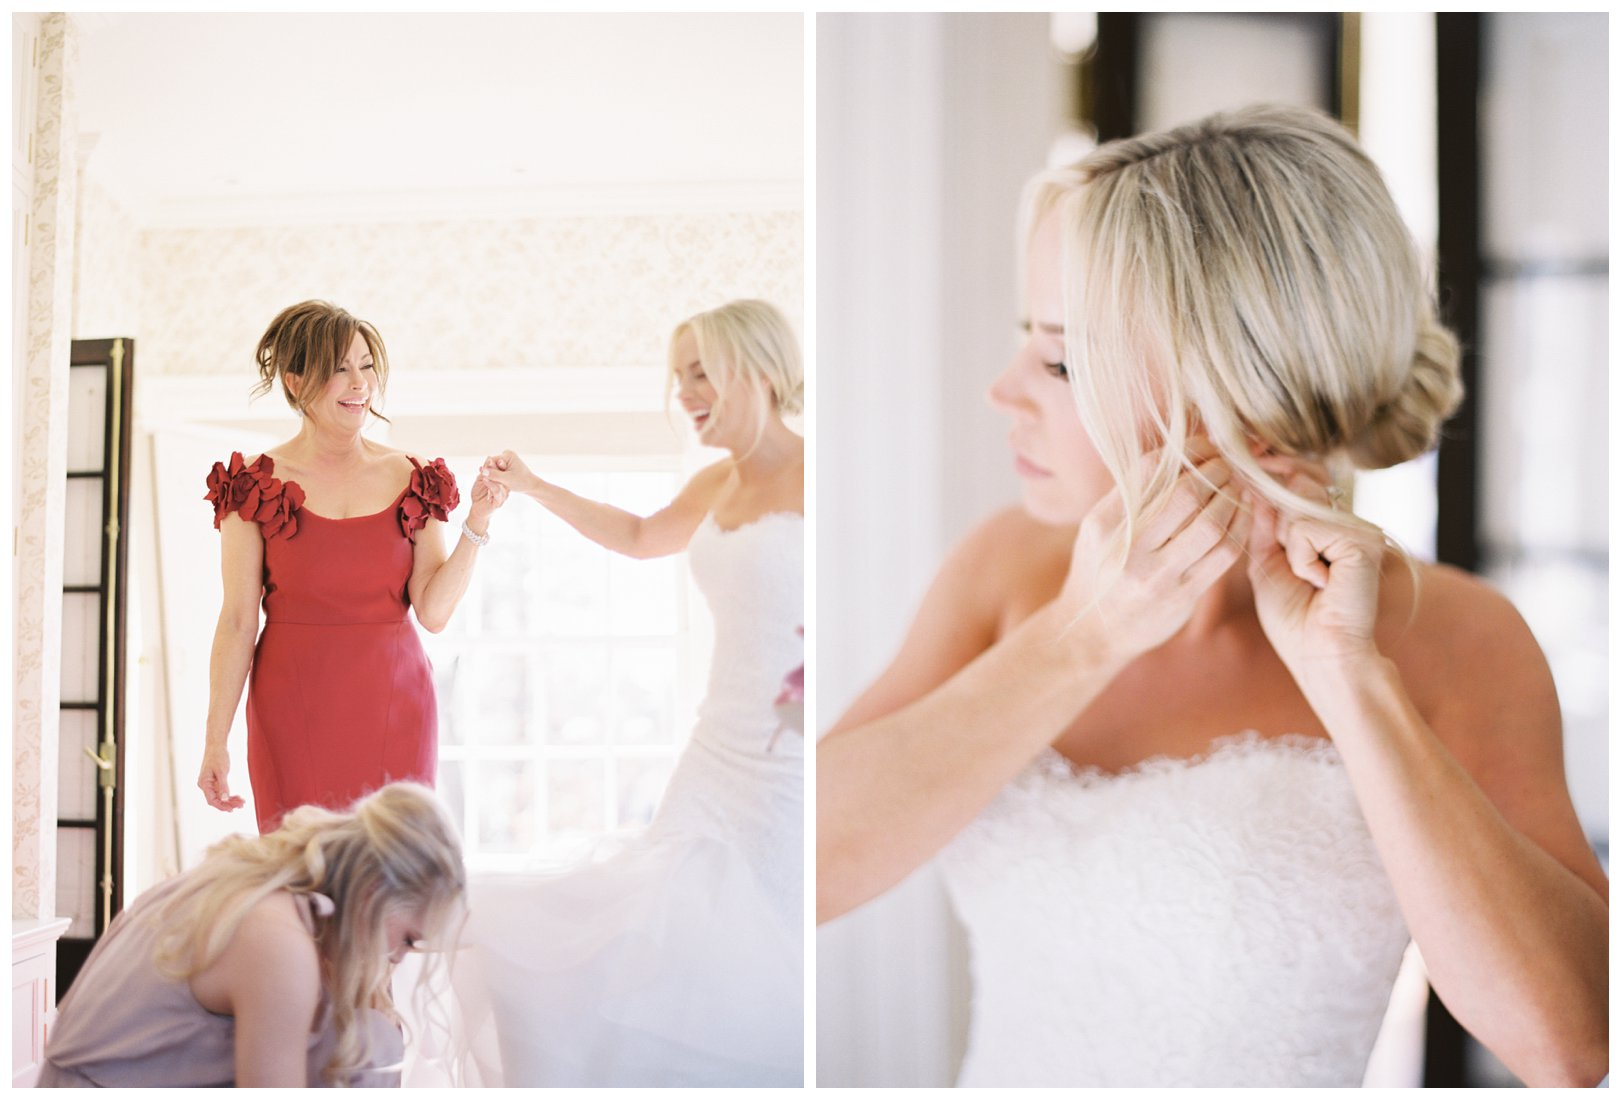 lauren muckler photography_fine art film wedding photography_st louis_photography_1348.jpg